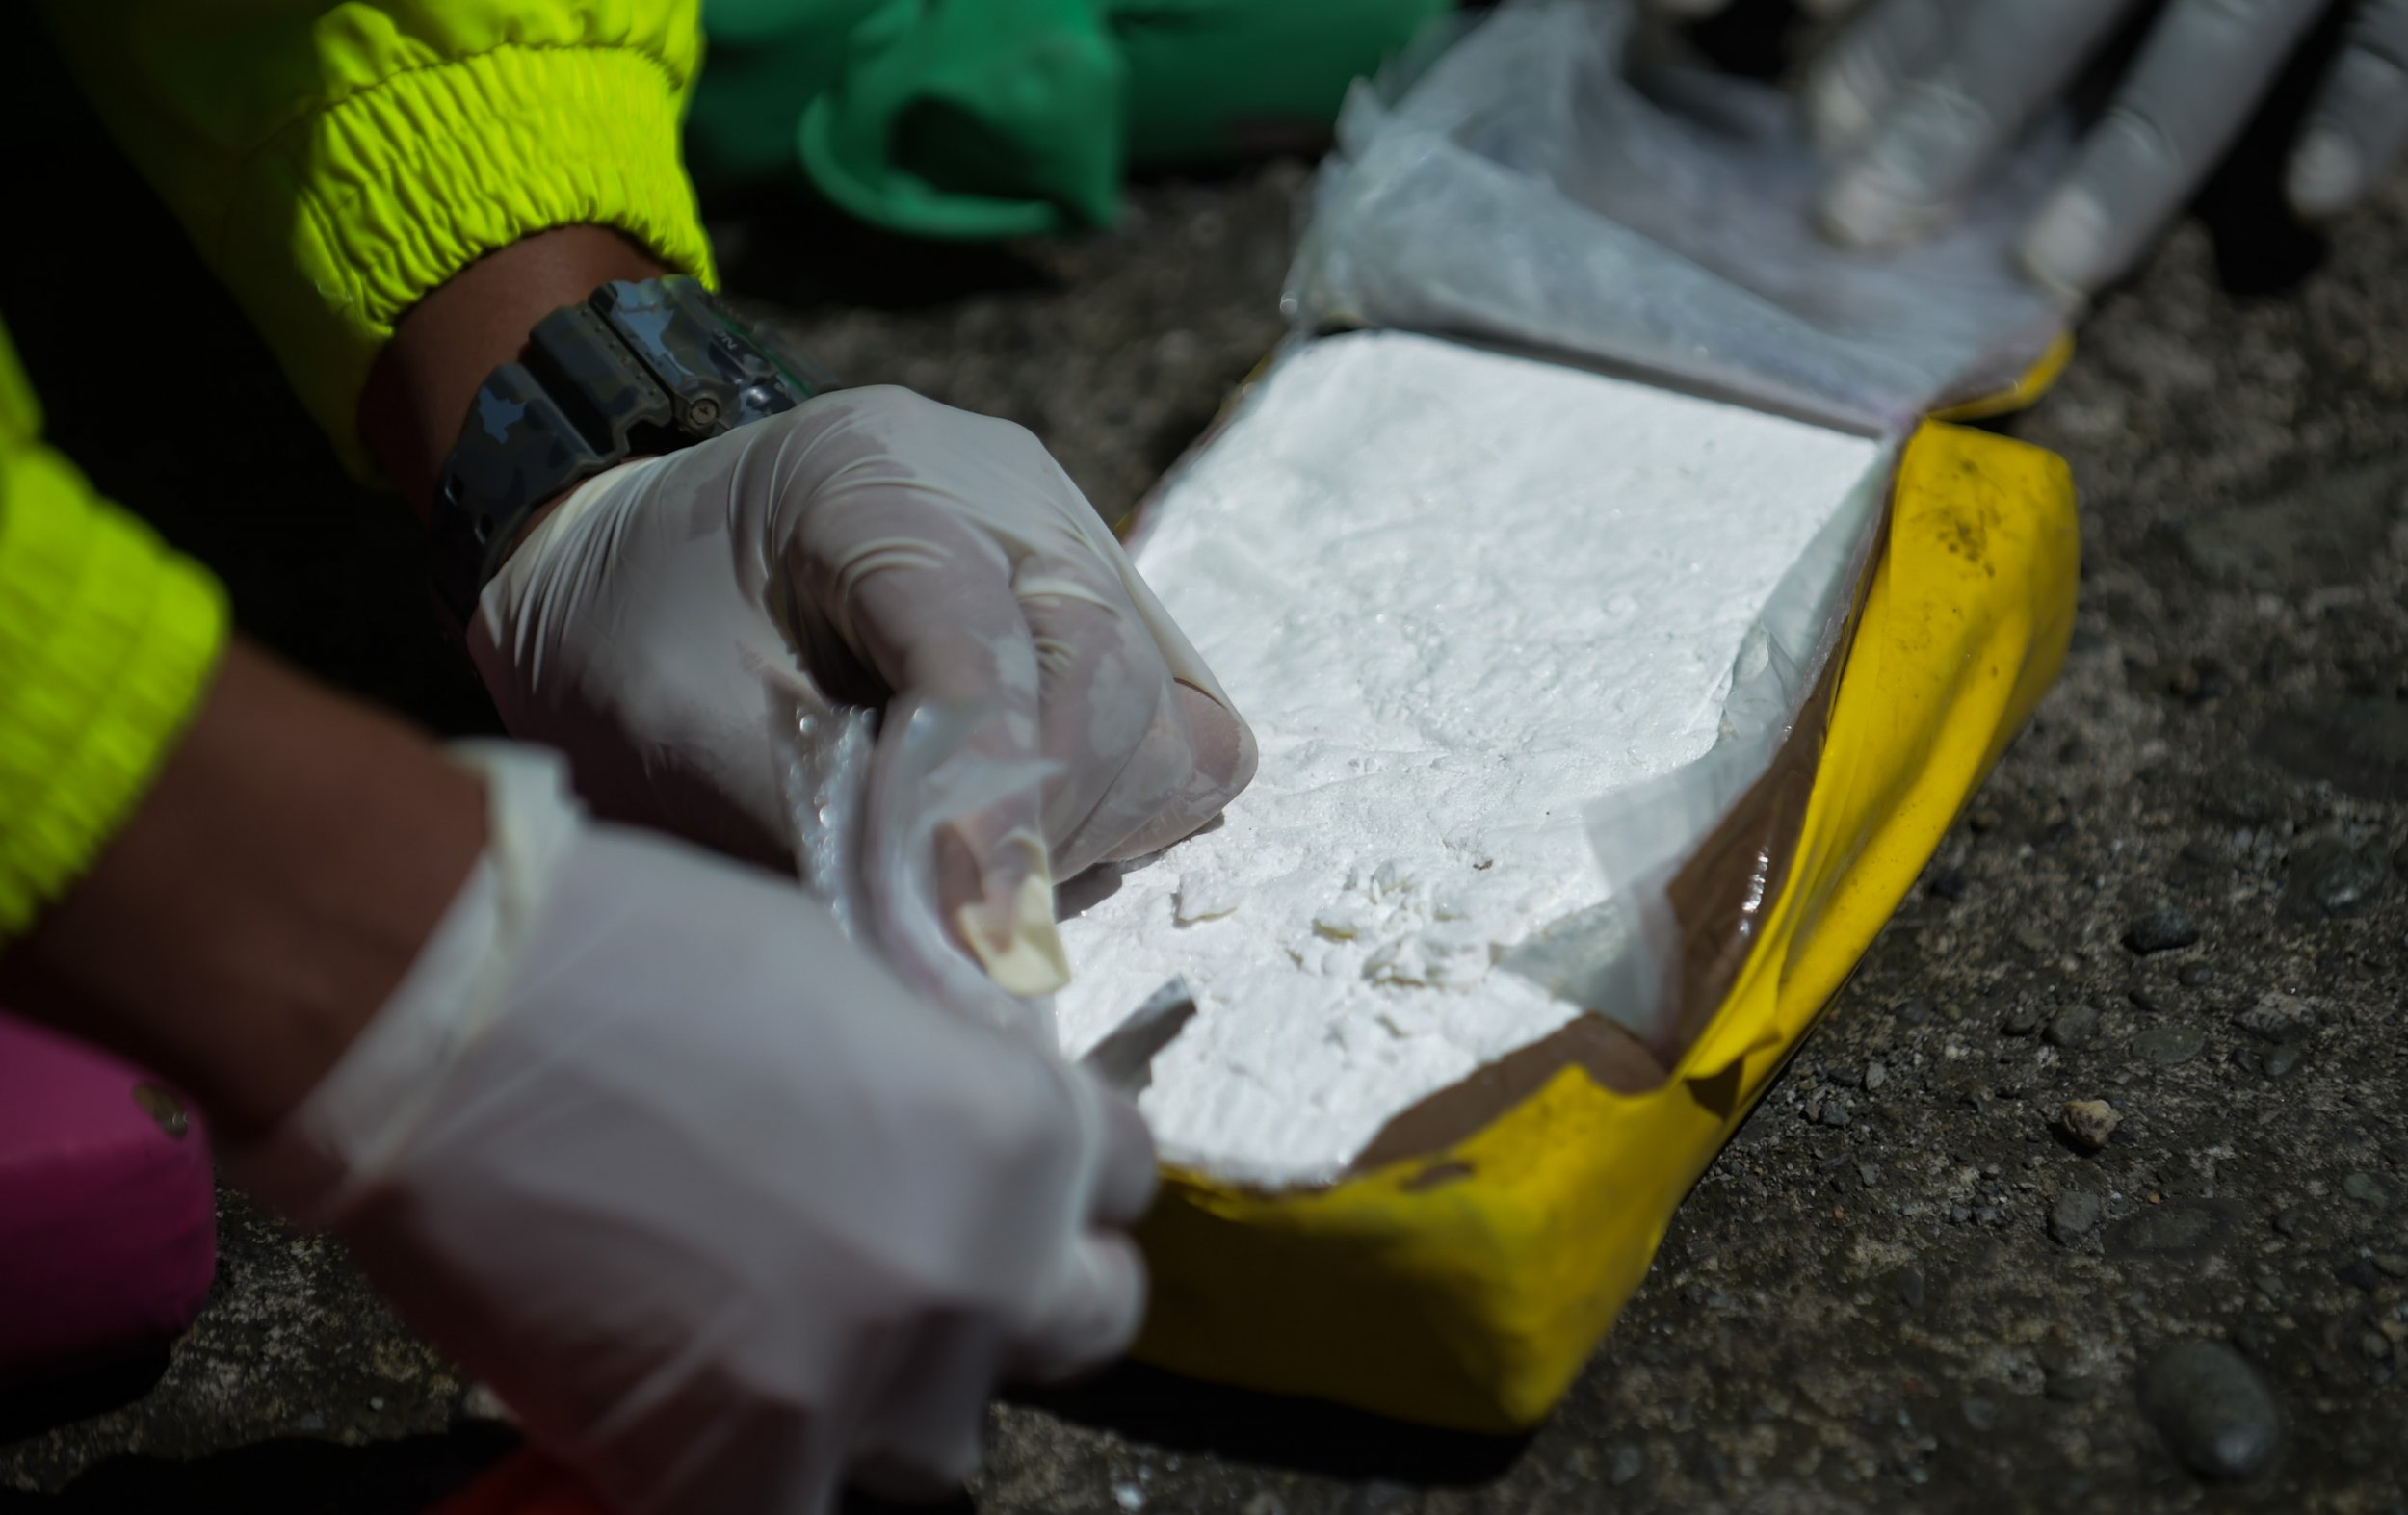 Colombia police cocaine